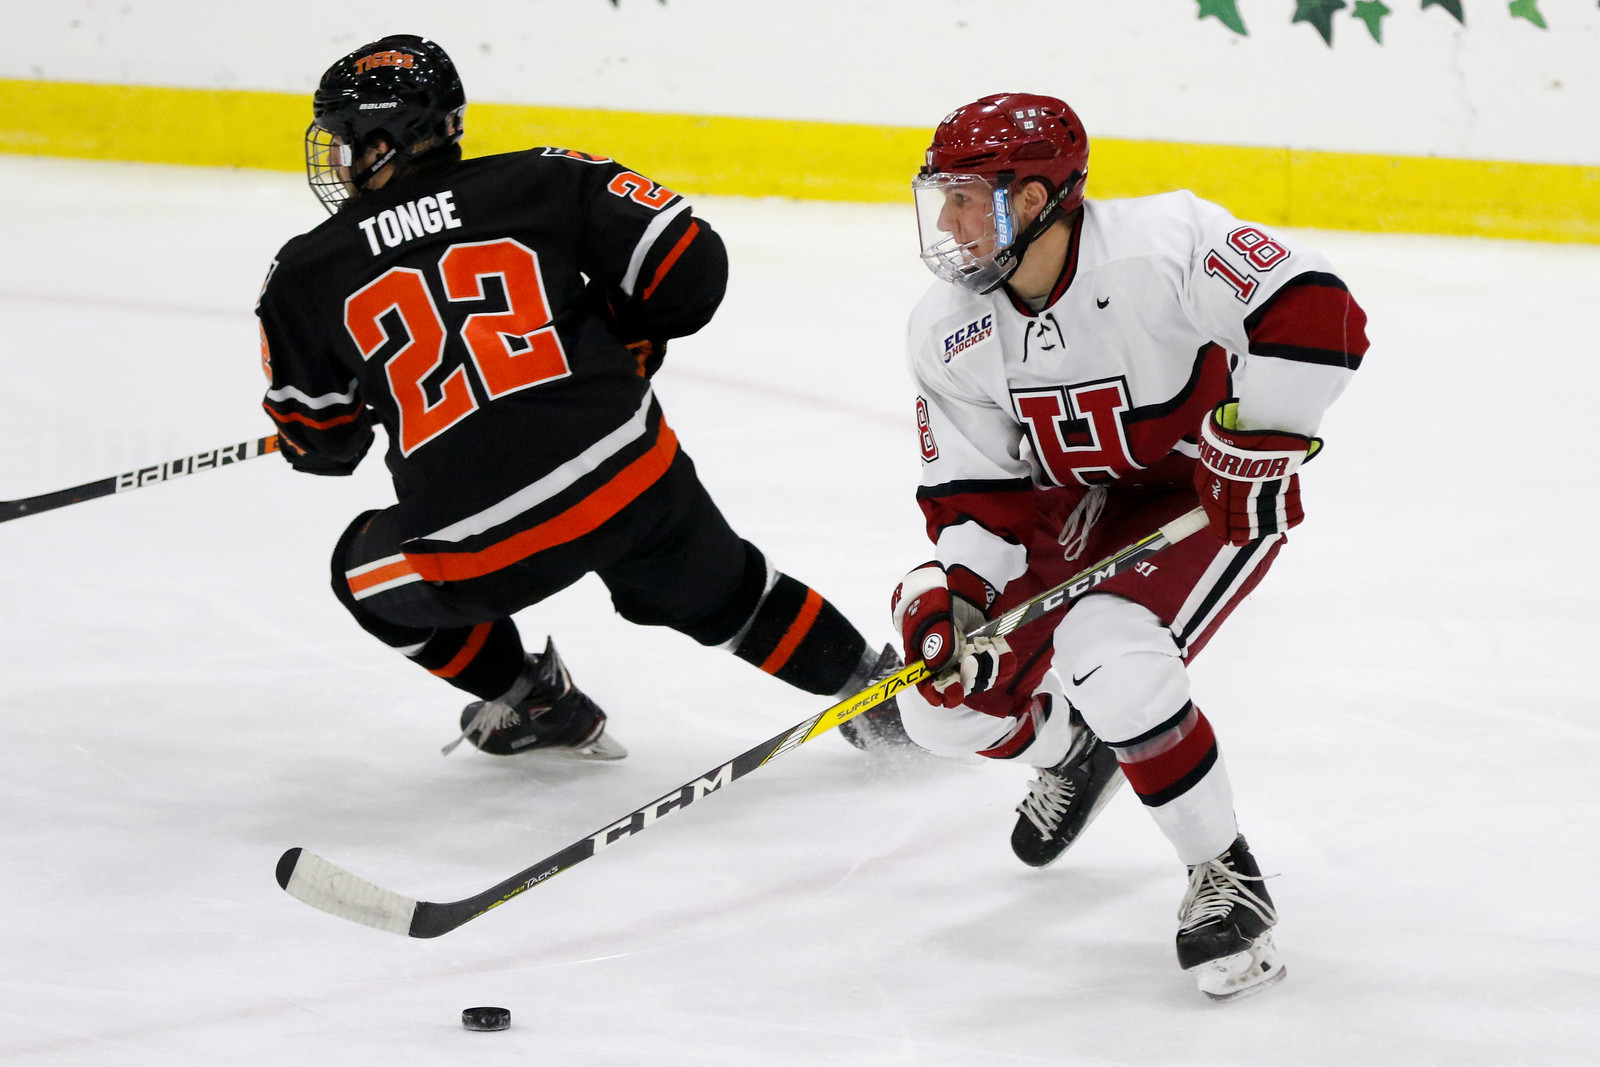 The Crimson picked up its first standings point of the season in Saturday's 4-4 draw with a ranked Princeton squad featuring two of the top scoring wingers in the country.